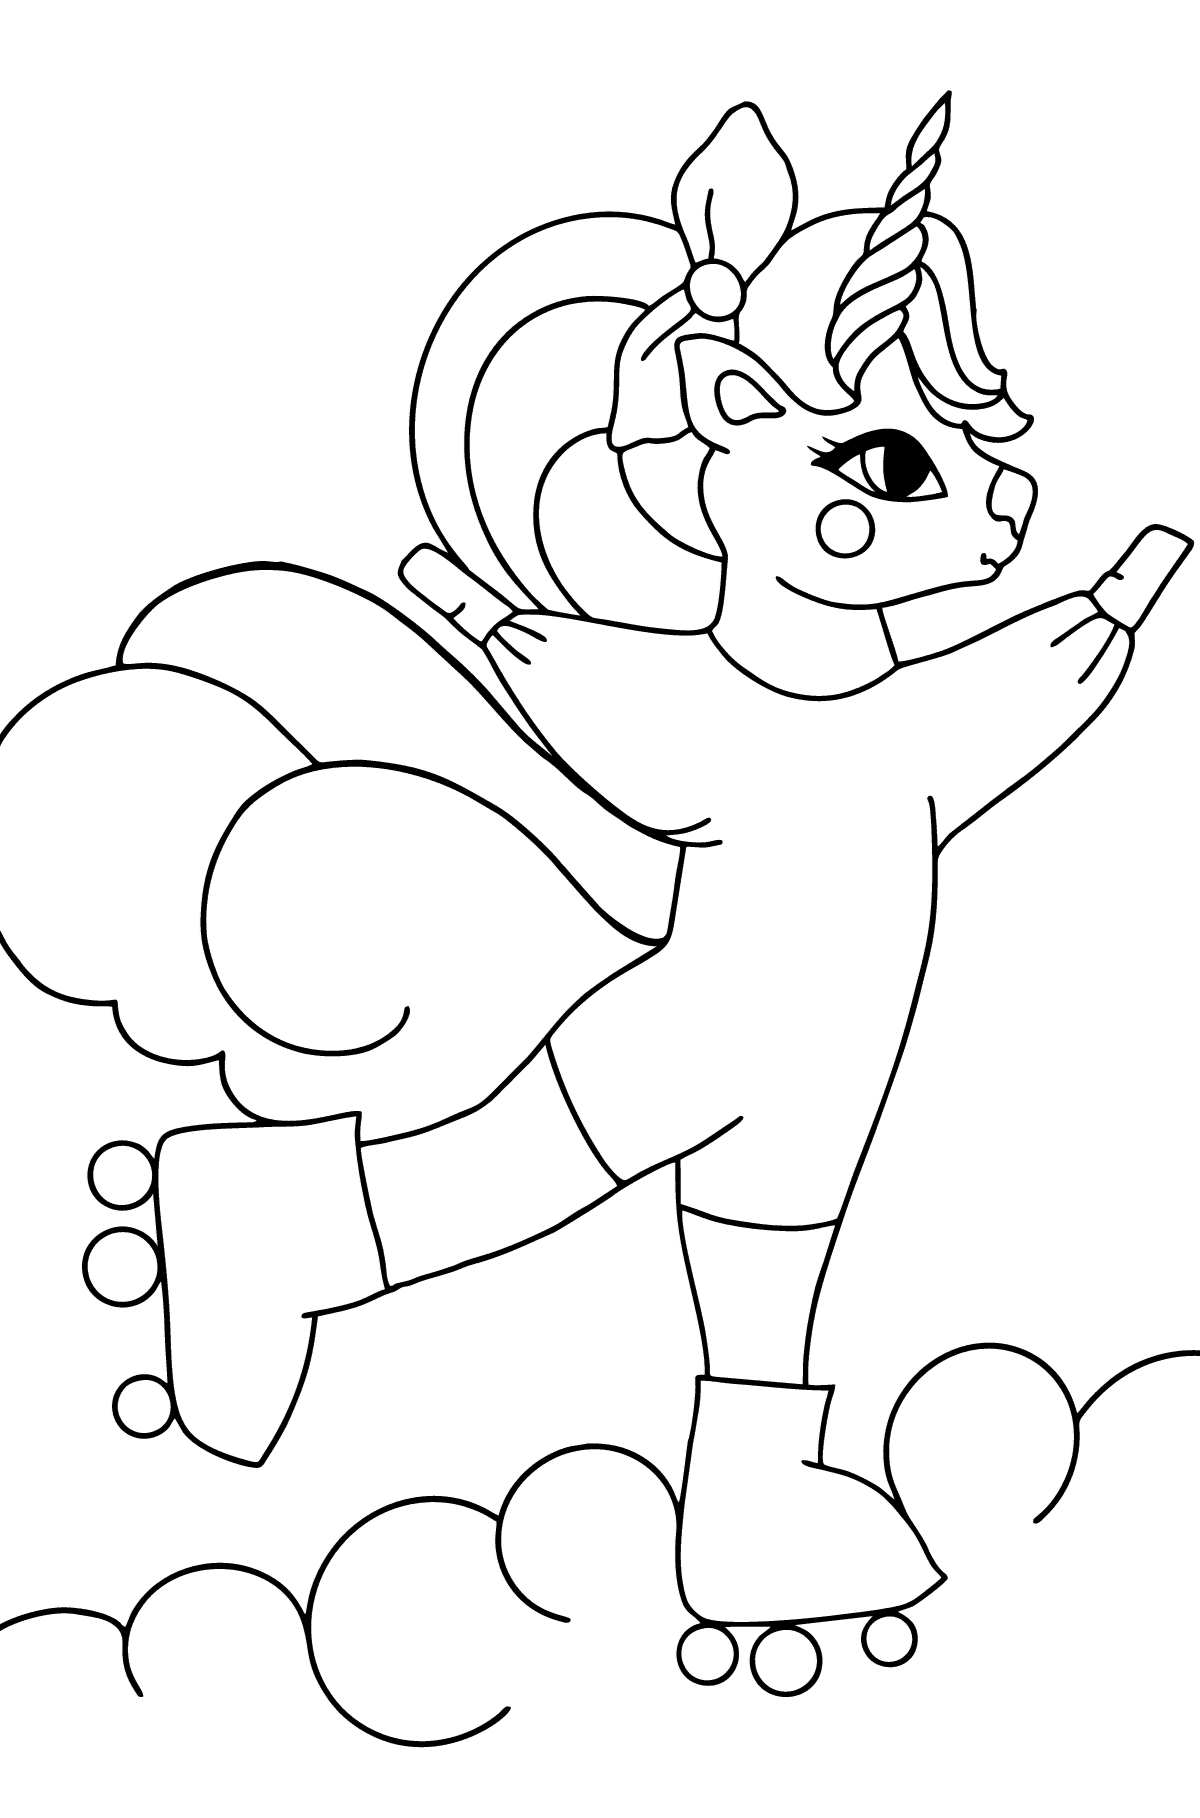 Simple Coloring Page - A Unicorn on Skates for Kids